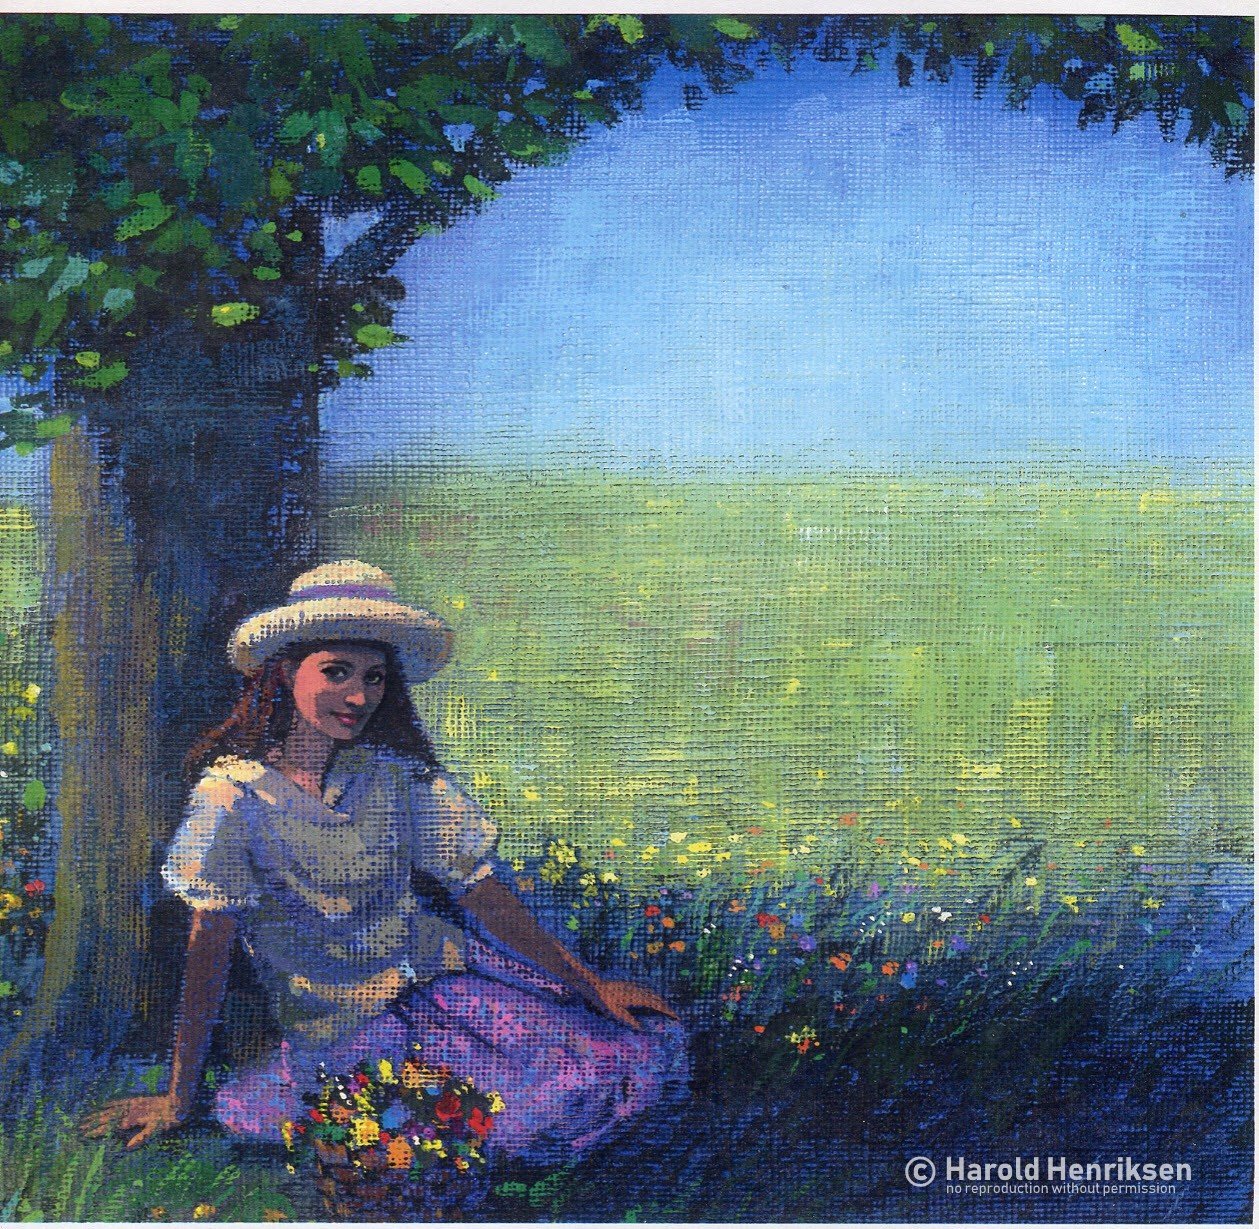 Girl By Tree painting by Harold Henriksen.